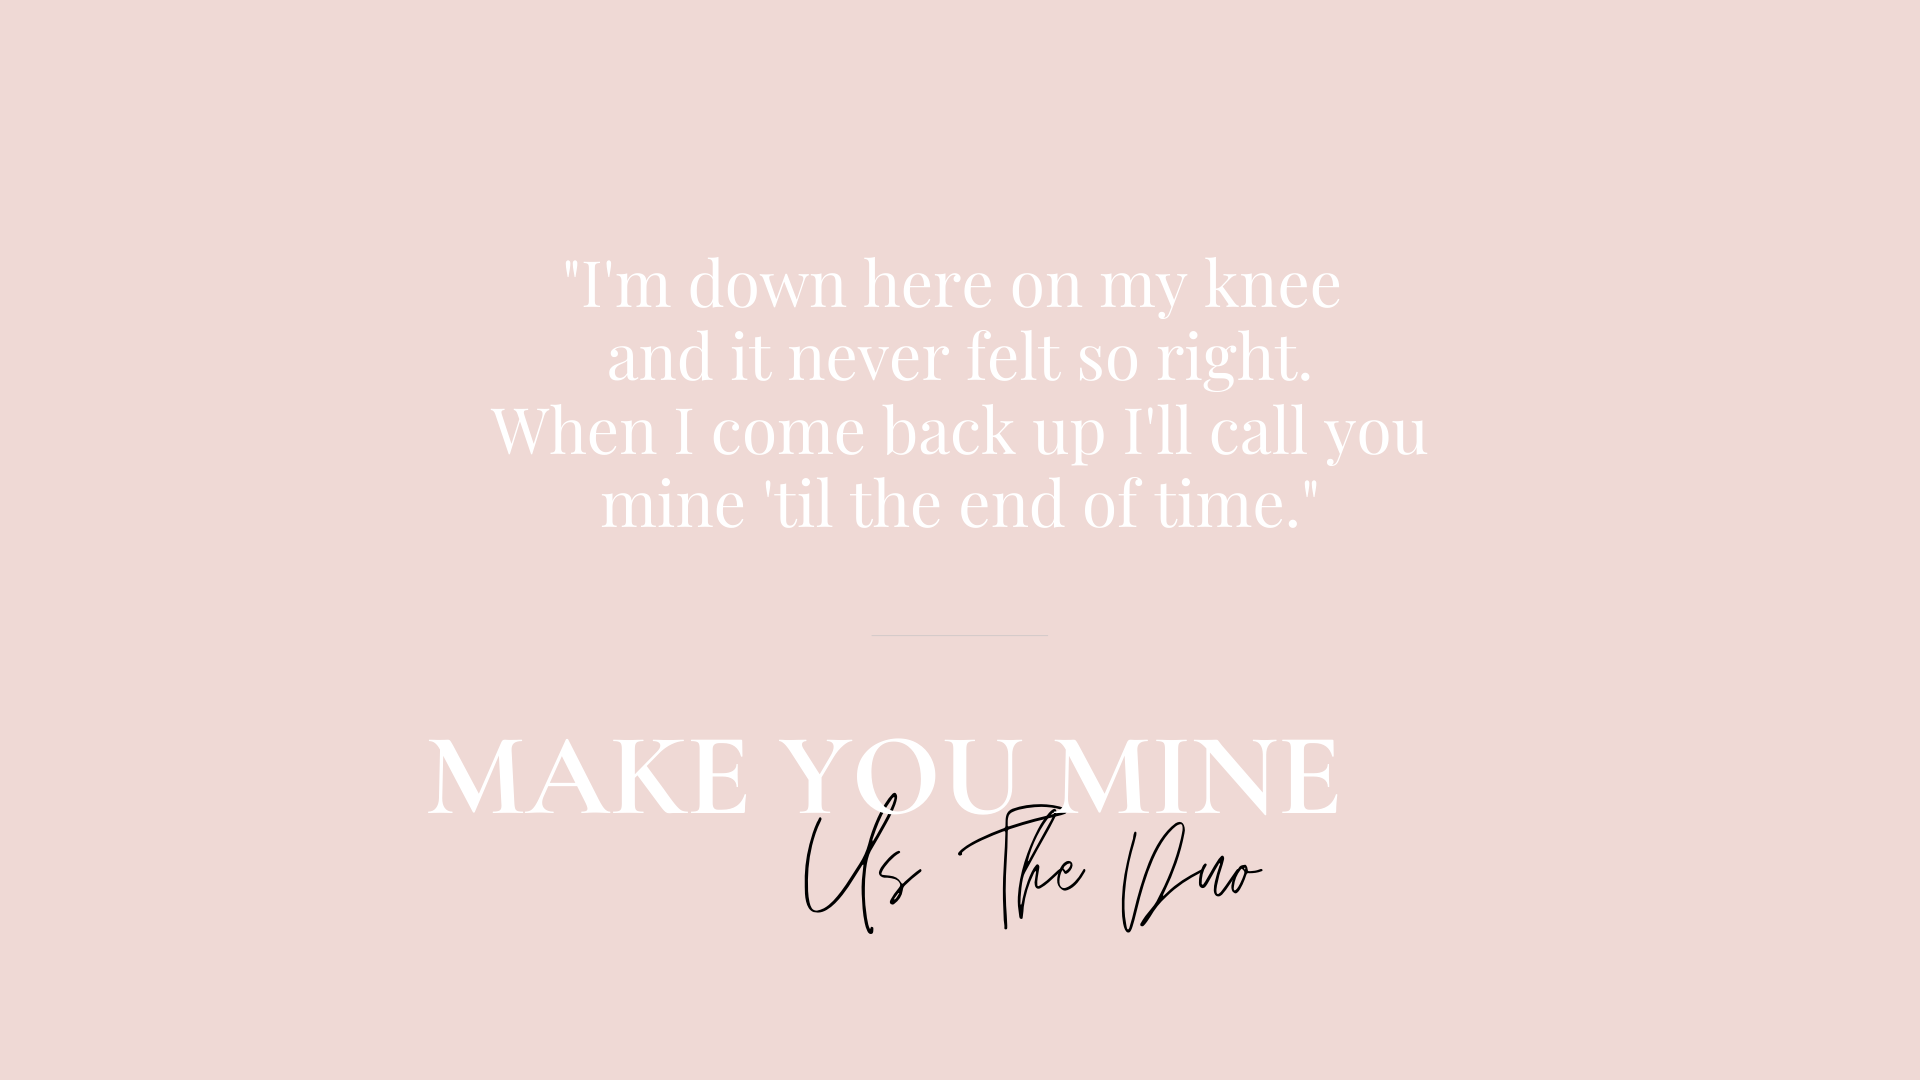 Song lyrics for bridal shower from 'make you mine' by Us the Duo